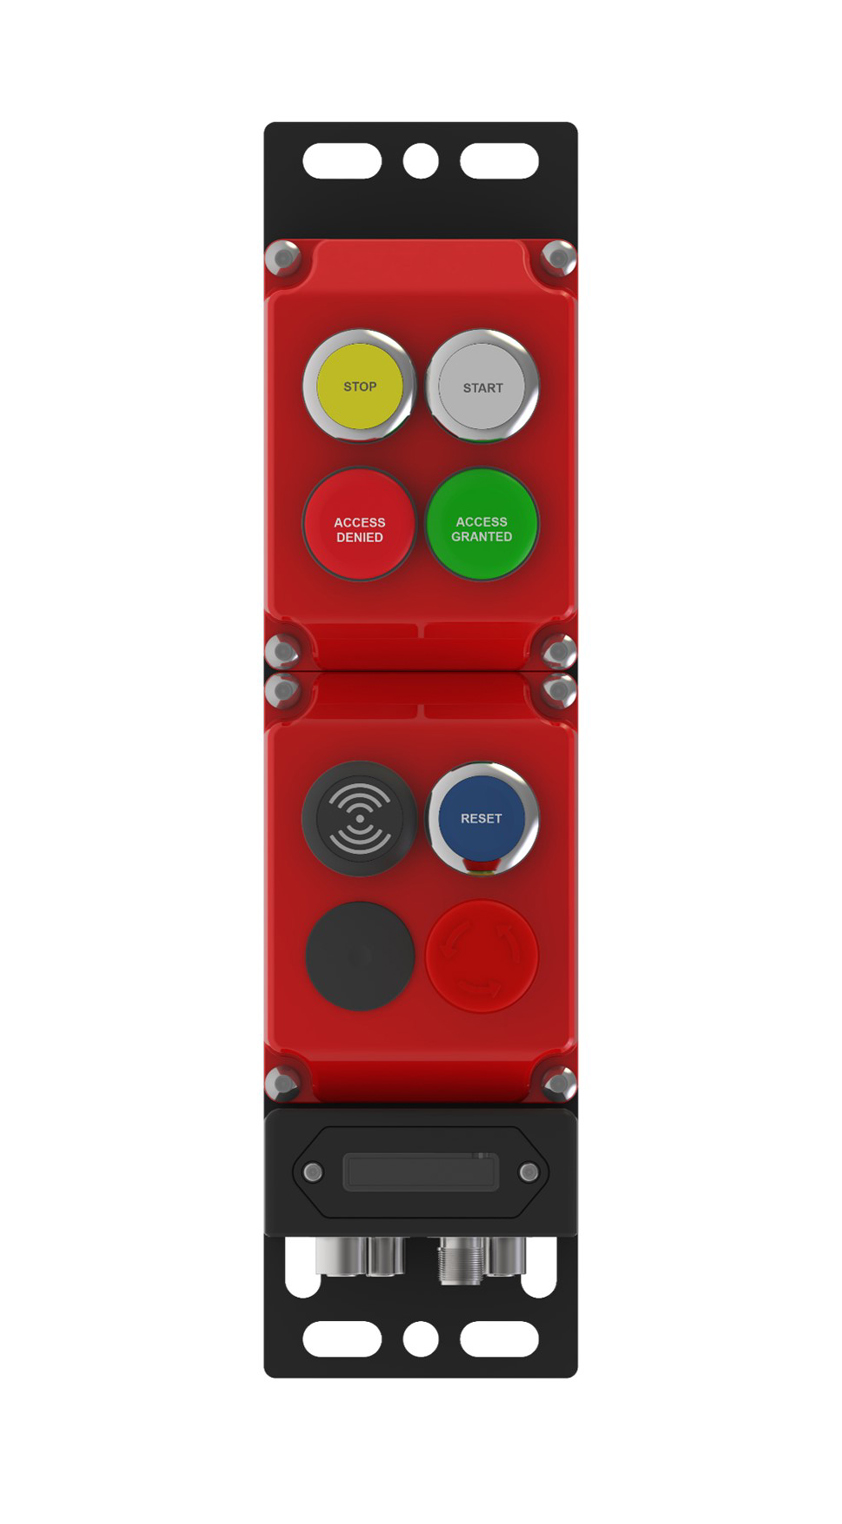 machineveiligheid toegangcontrole met badge